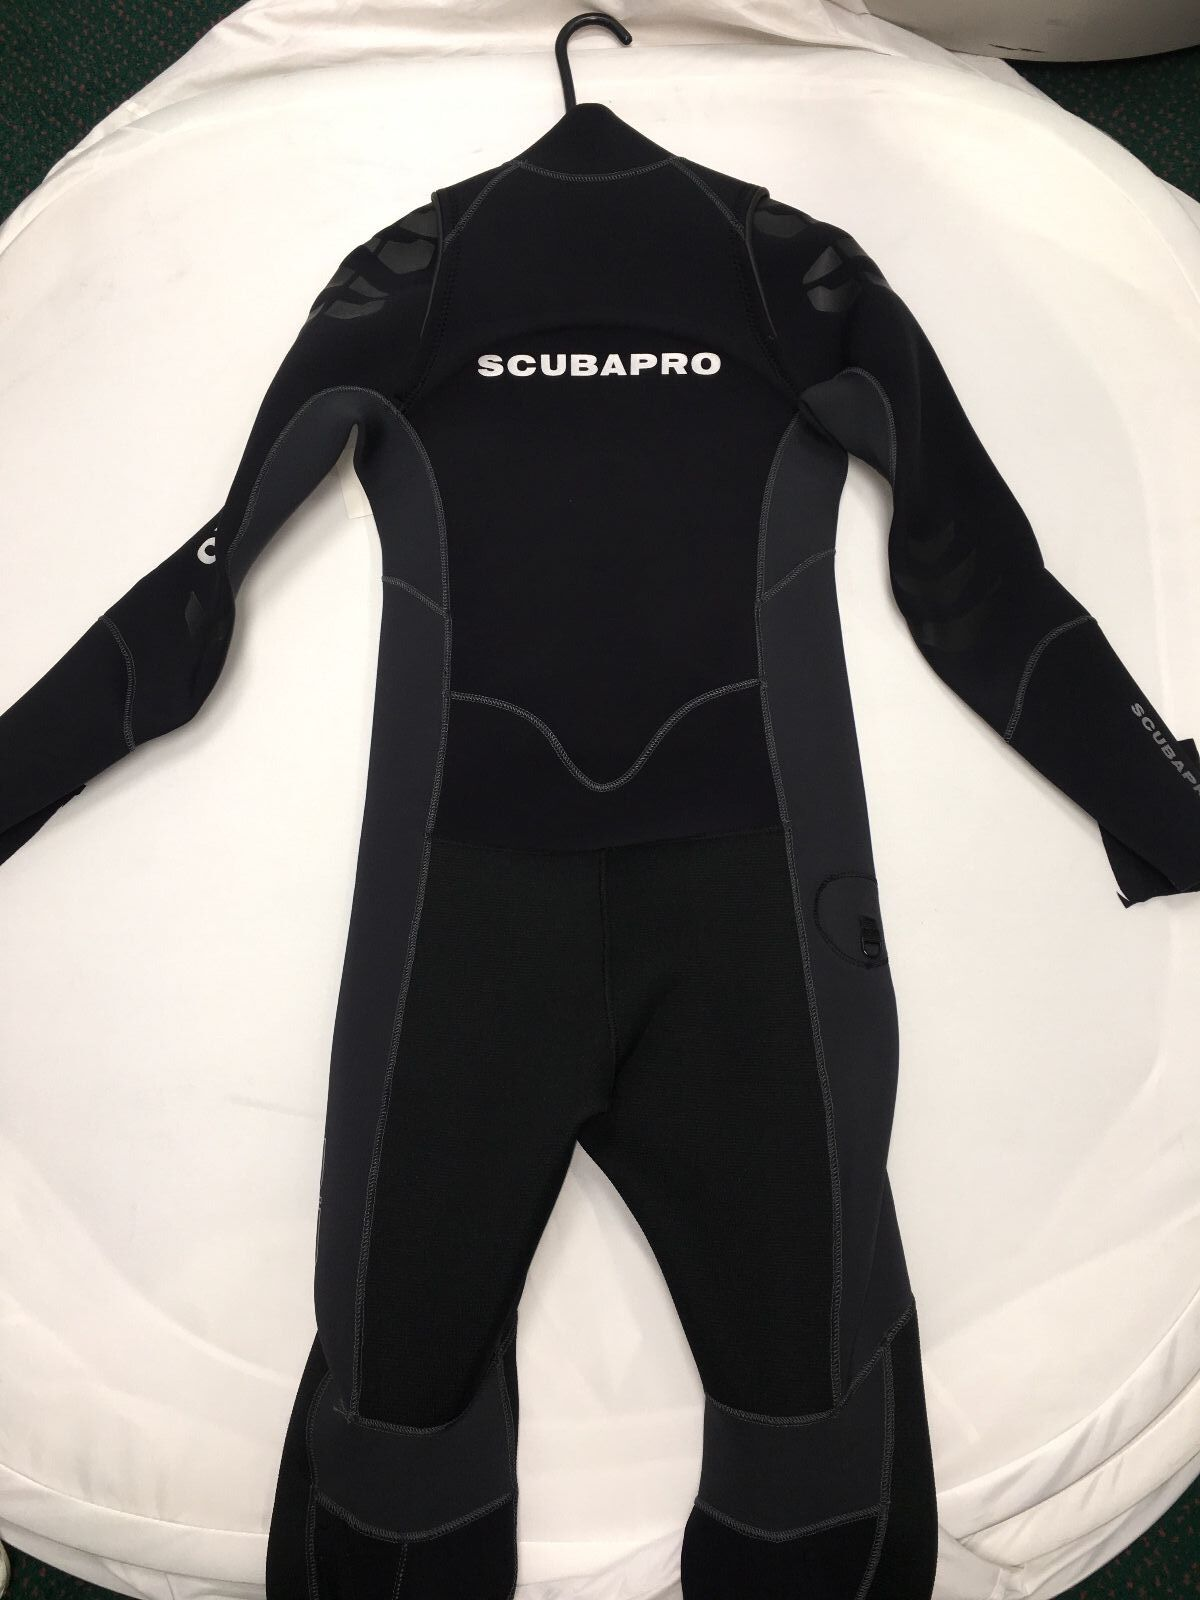 ScubaPro Everflex CZIP Size Medium